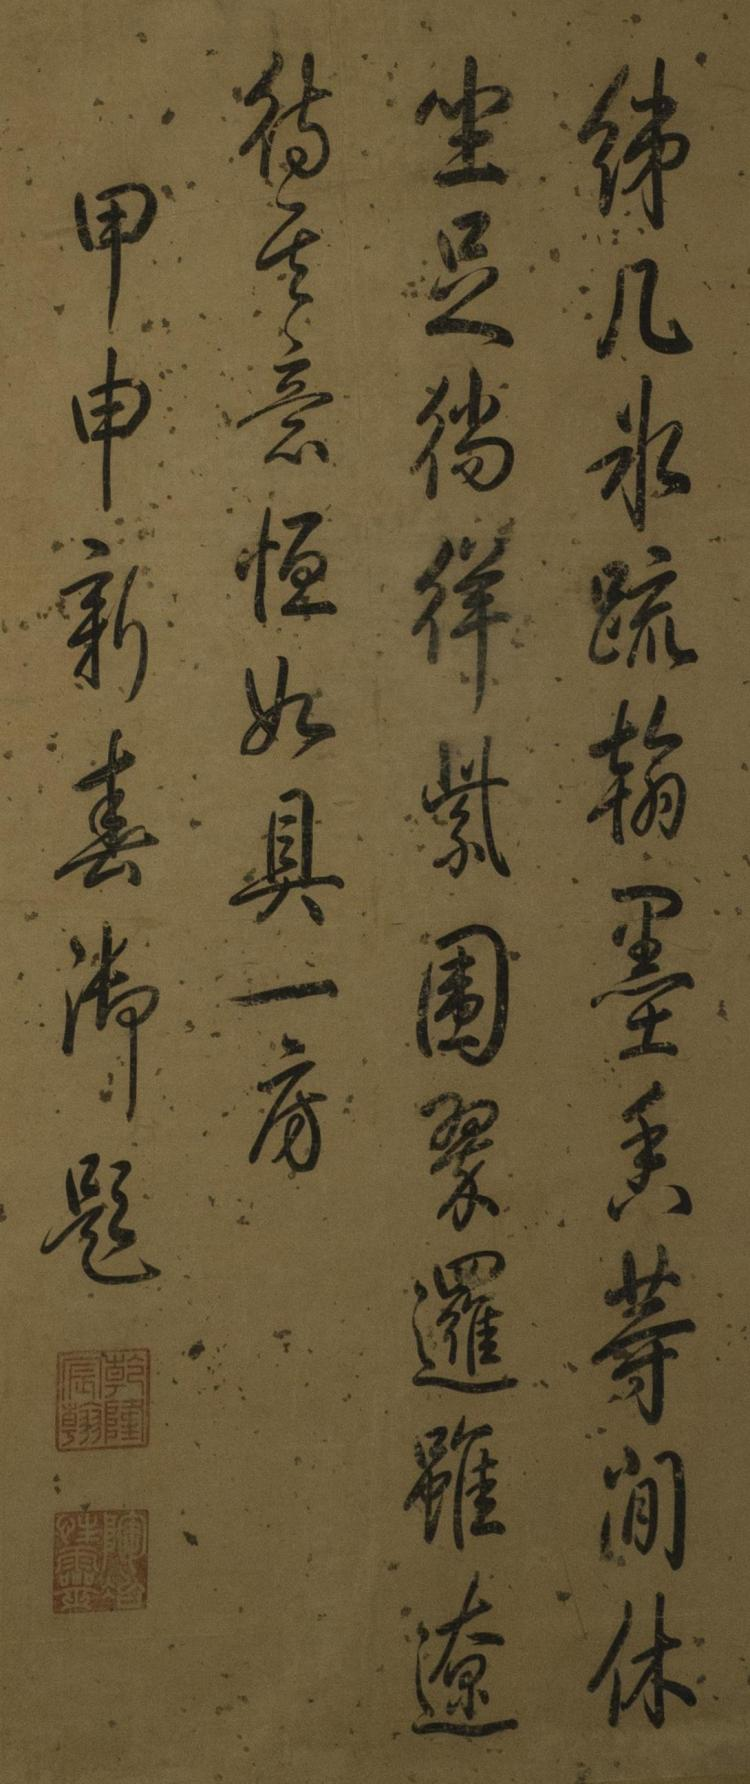 Chinese Calligraphy Qianlong Emperor (1711- 1799)